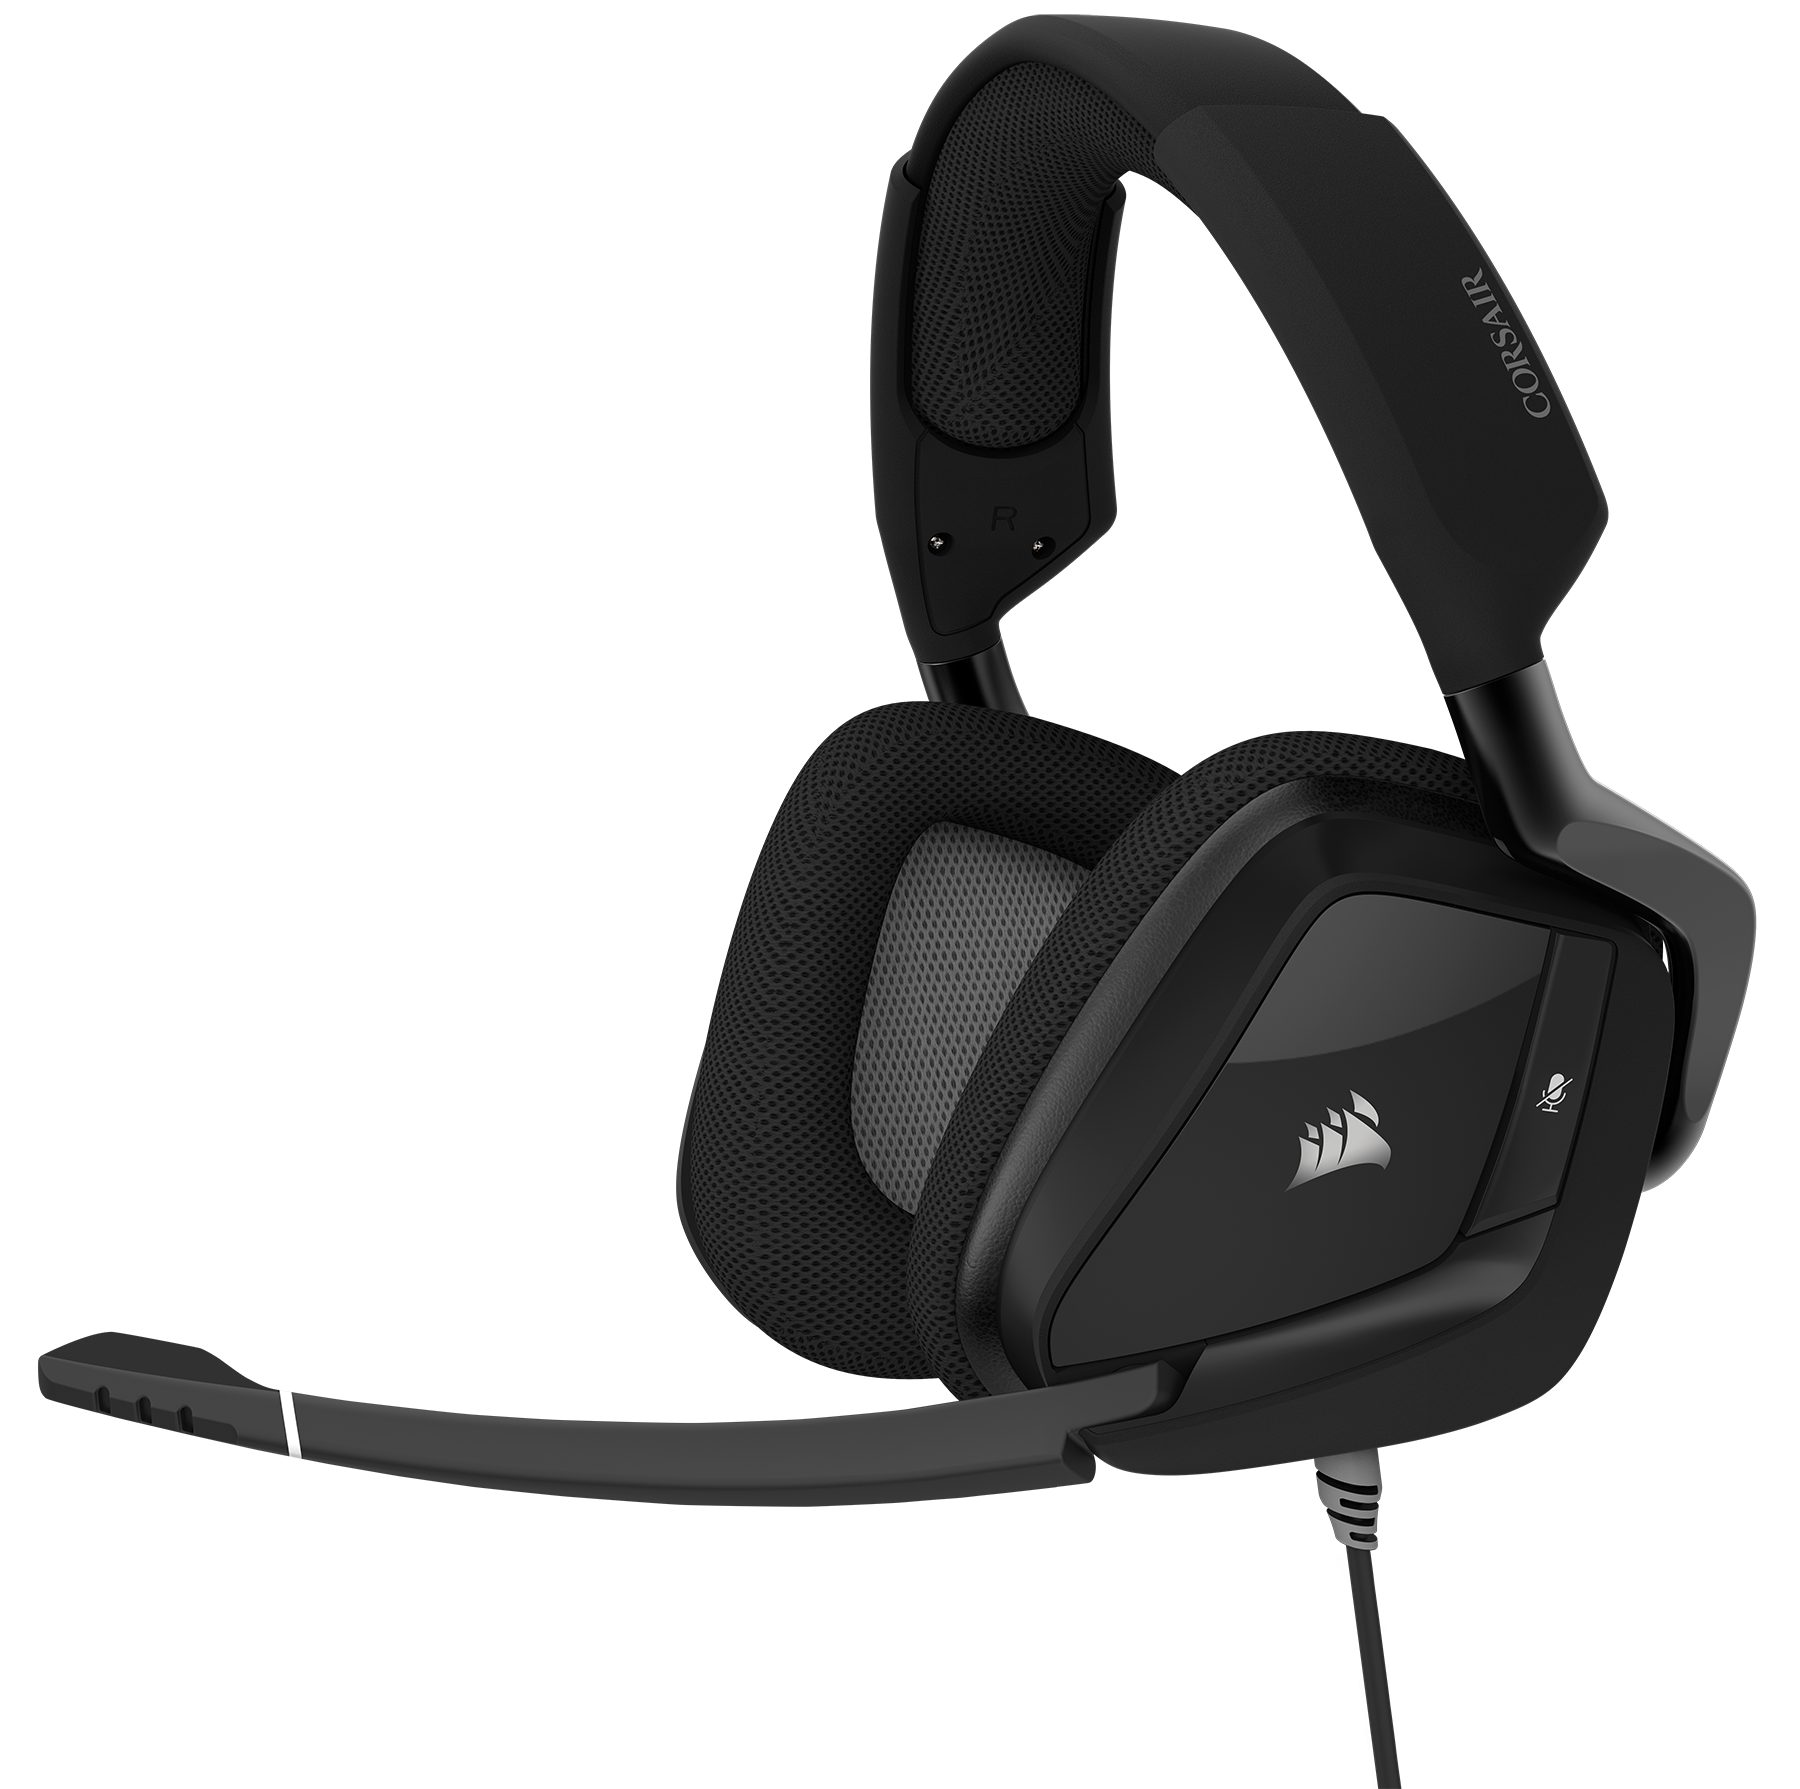 The CORSAIR VOID PRO RGB USB Headset Provides Exceptional Comfort Epic Audio Performance And Legendary Durability To Deliver Ultimate Gaming